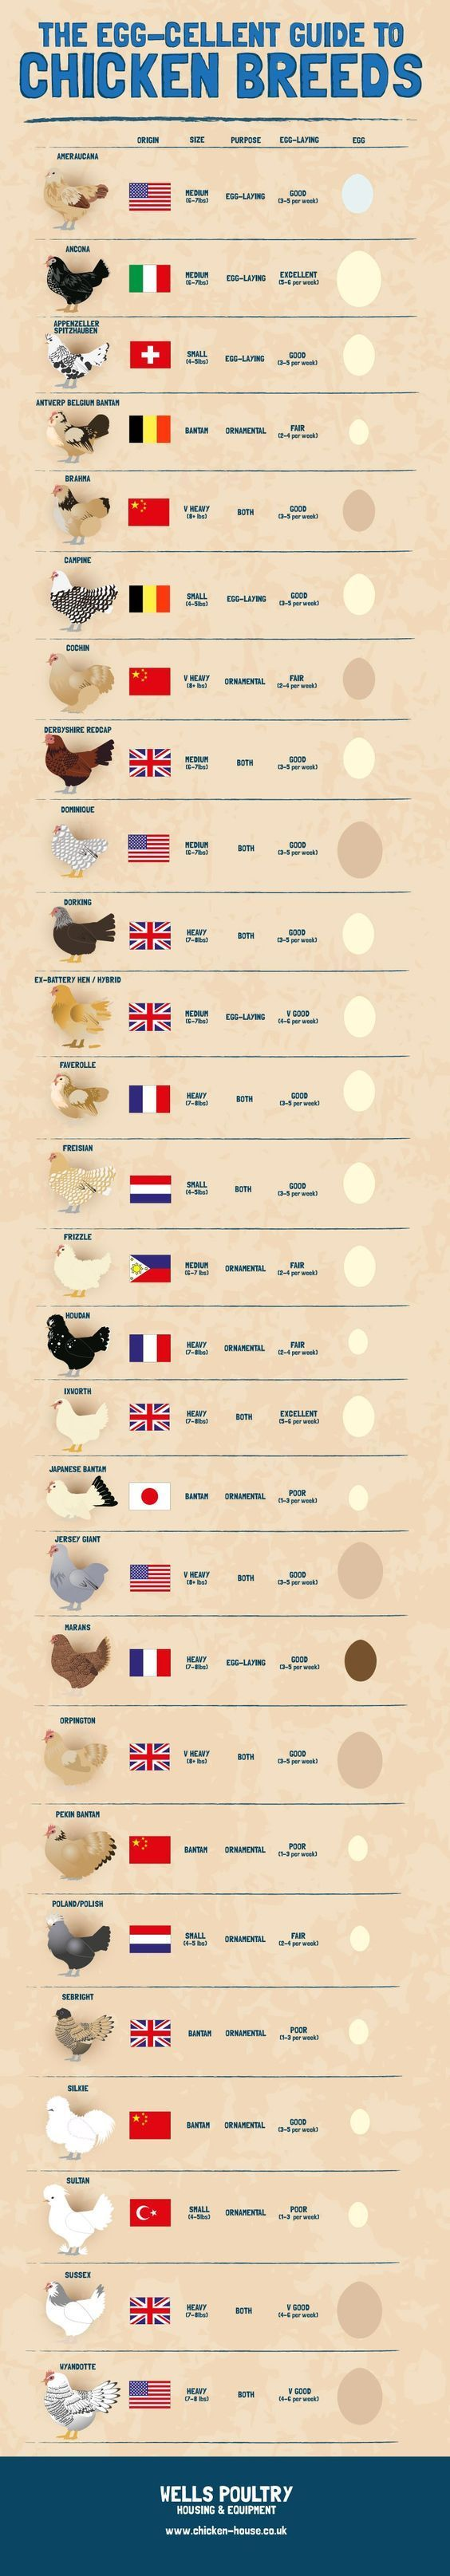 The Egg-Cellent Guide to Chicken Breeds [INFOGRAPHIC]